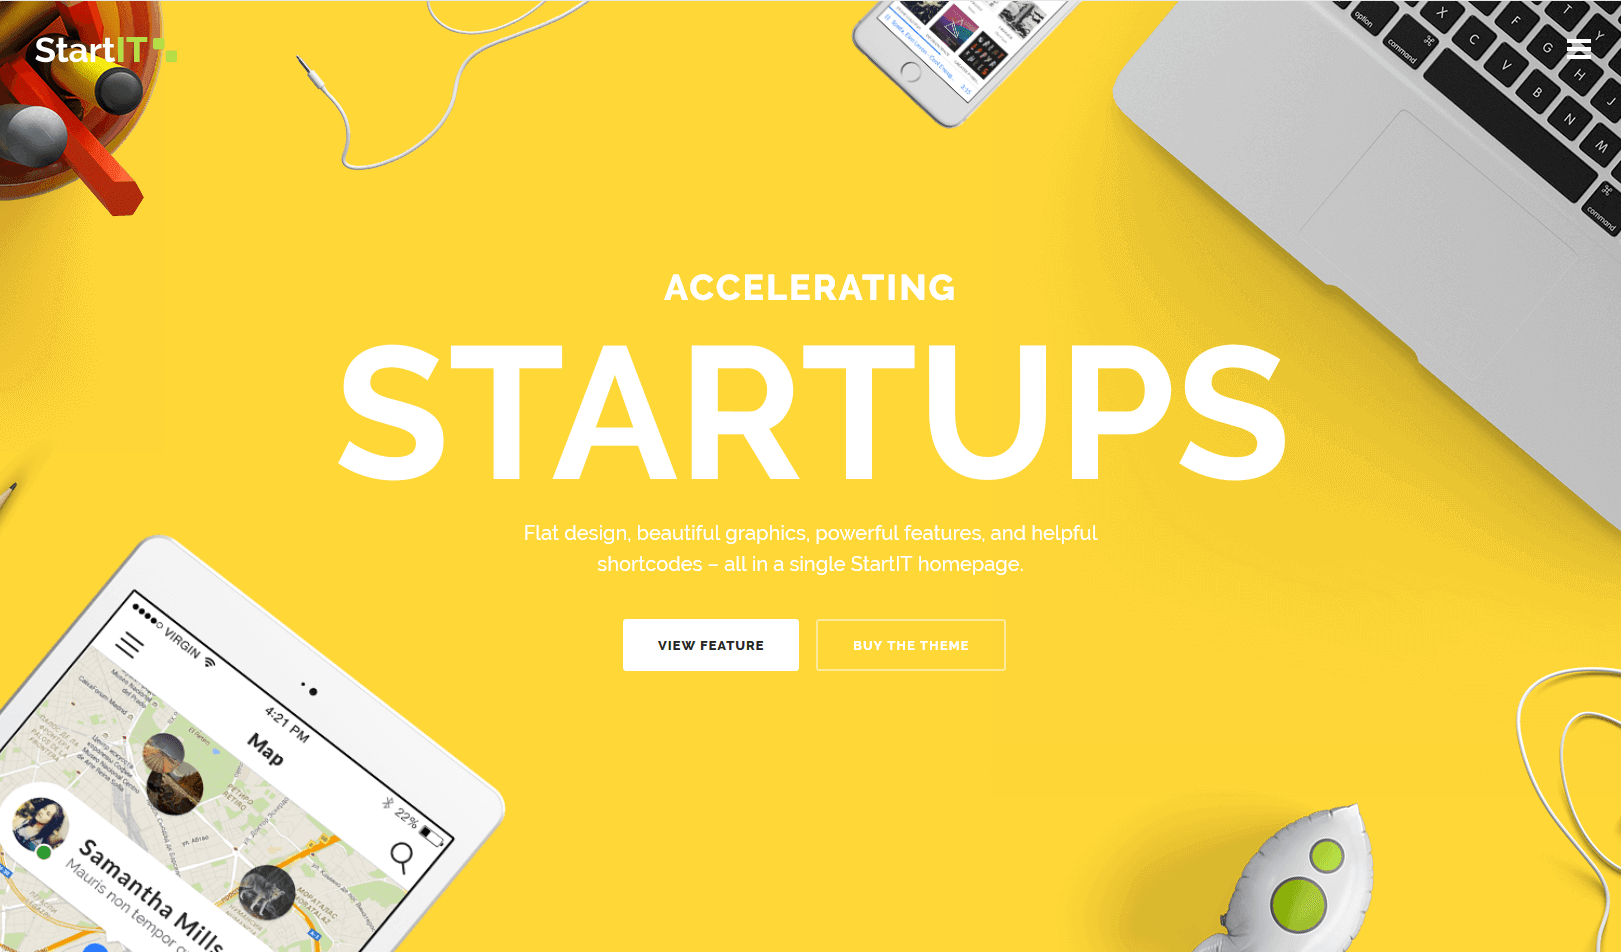 WOrdPress theme for startups